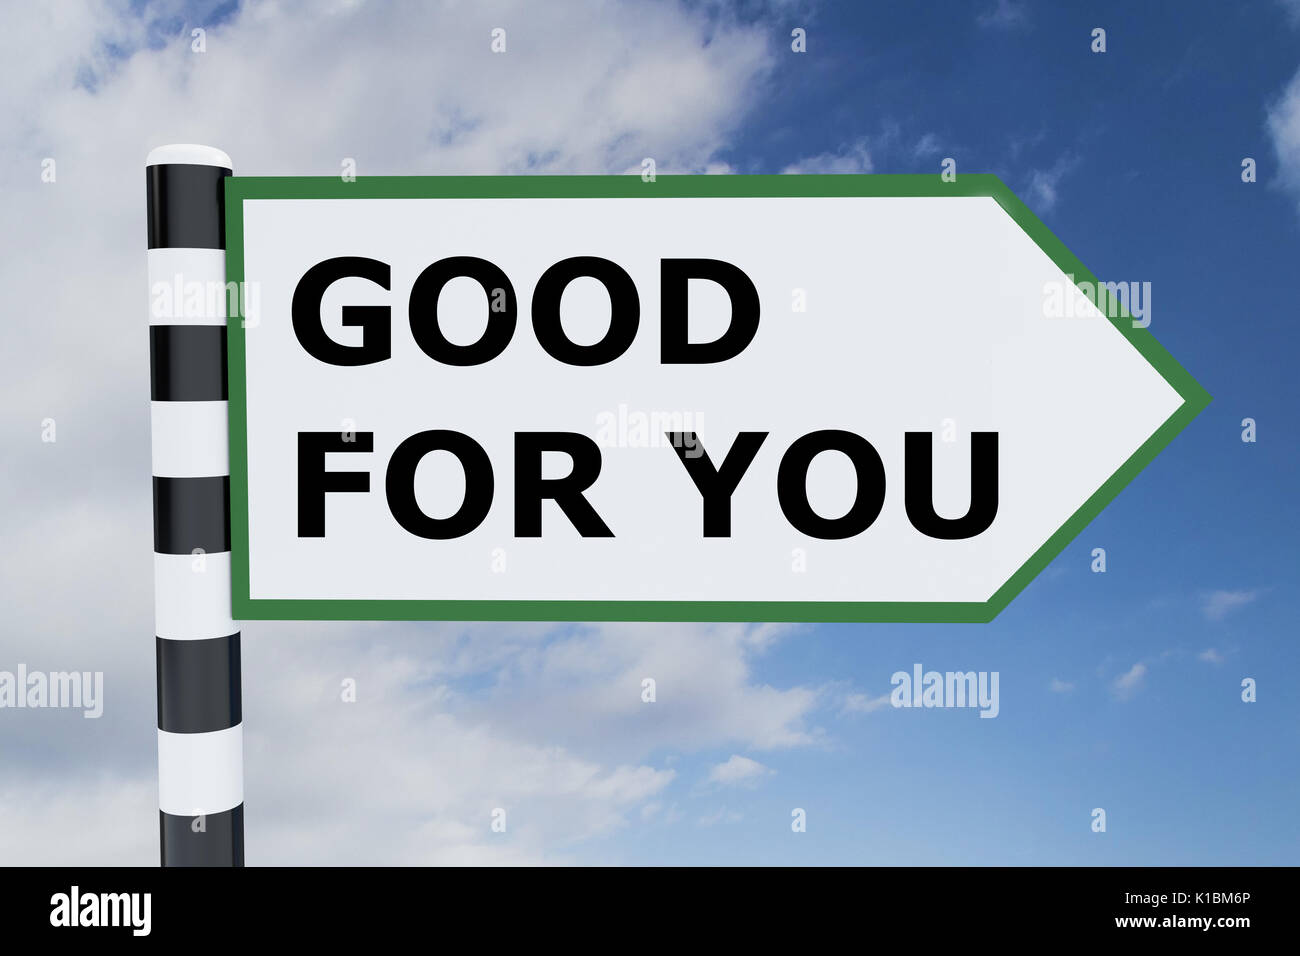 Render illustration of Good for You title on road sign - Stock Image